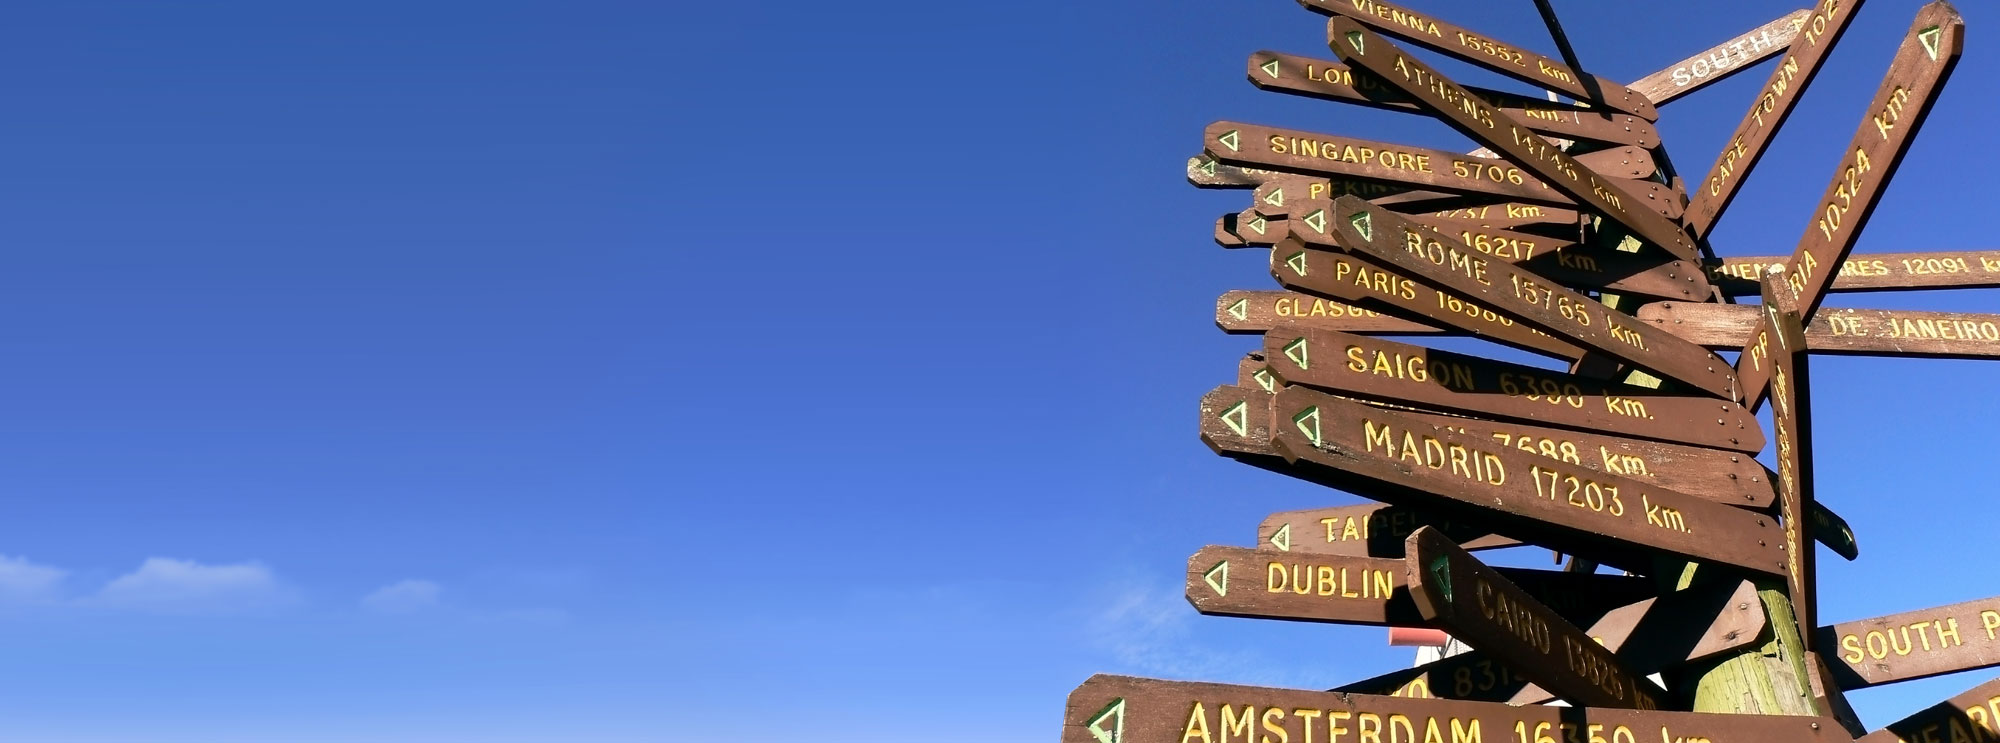 TEAM Tourism Consulting - Creating Great Destinations